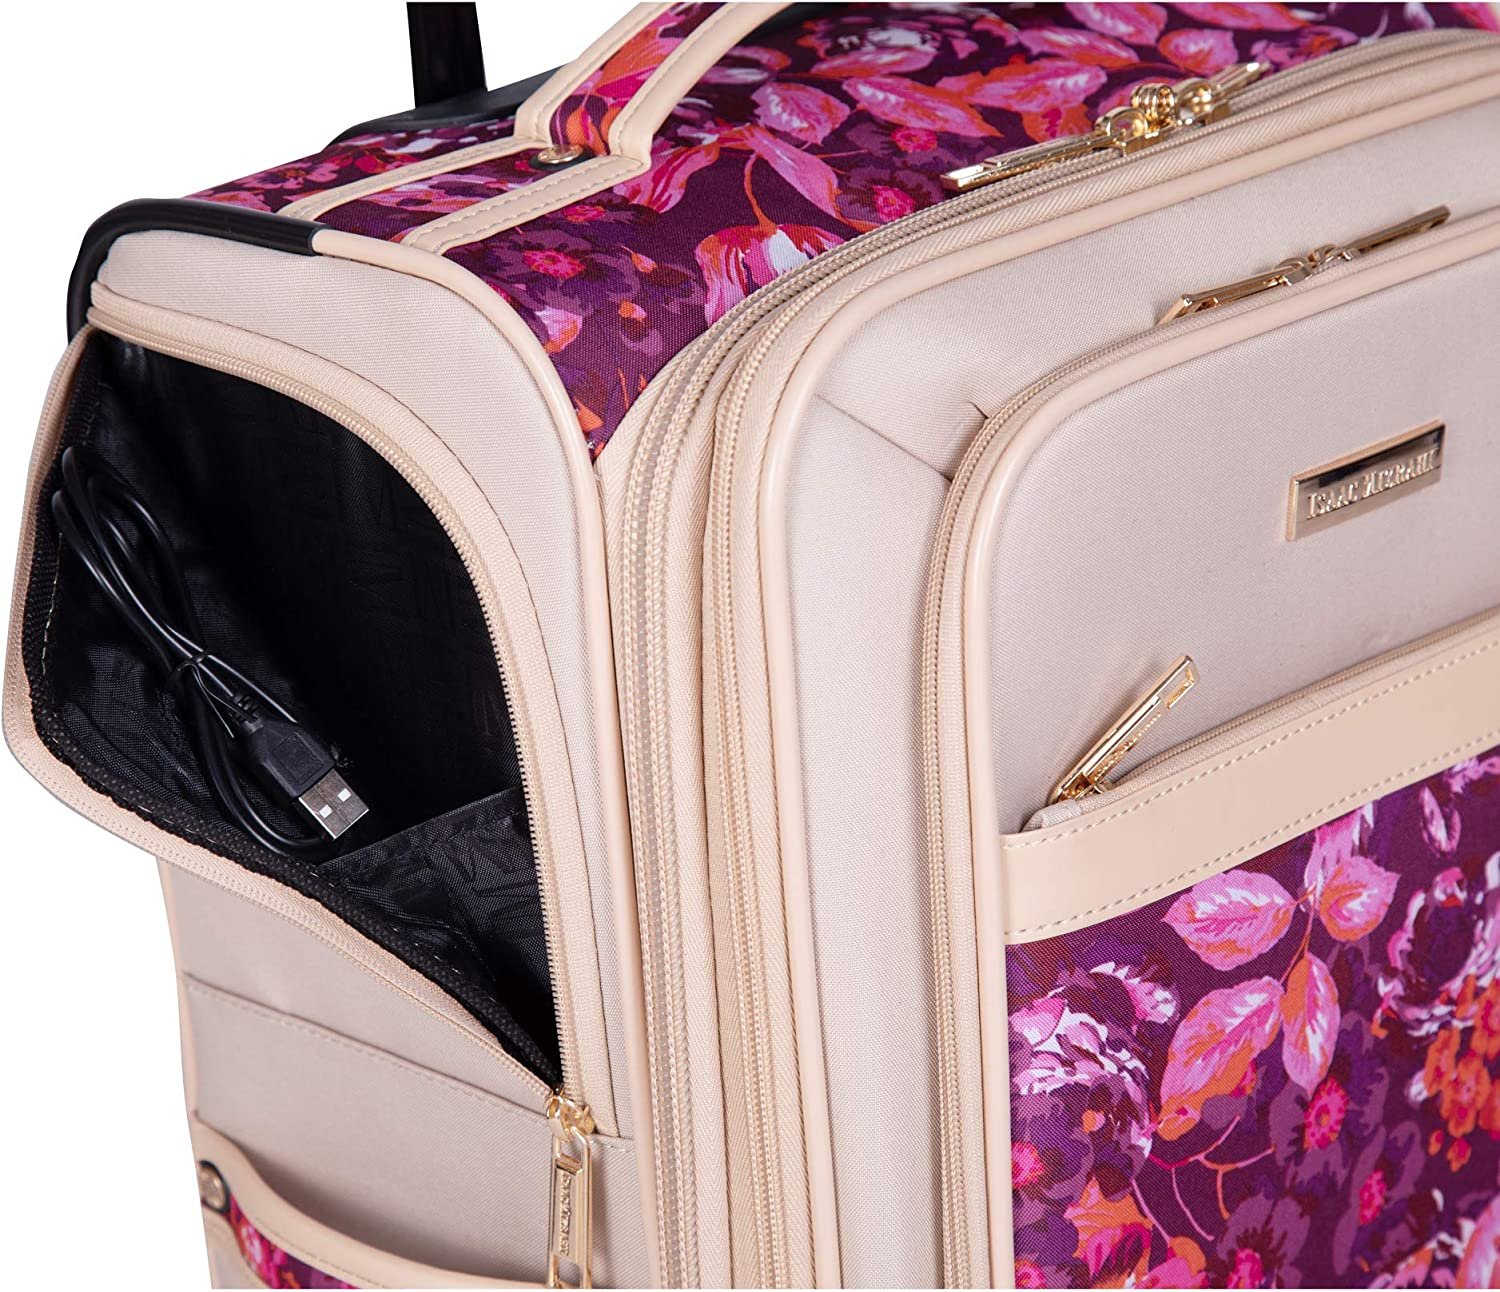 Isaac Mizrahi Irwin 2 4-Wheel Spinner Luggage Pink Floral, 4-Piece Spinner Luggage Set